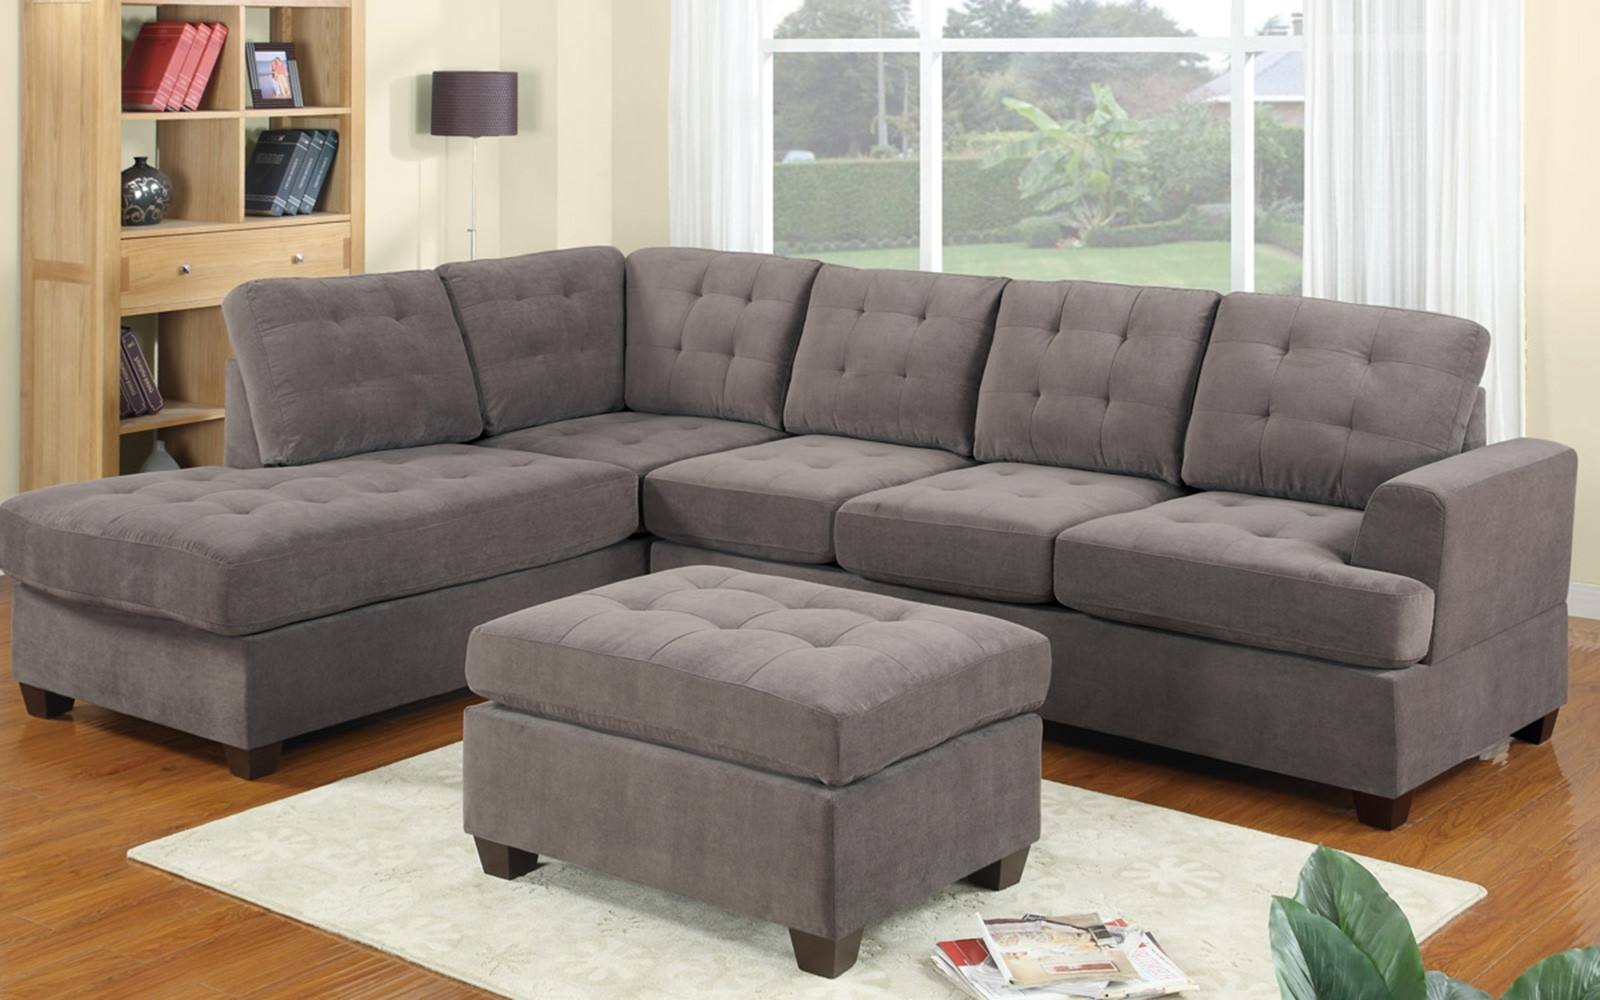 2 Piece Modern Reversible Grey Tufted Microfiber Sectional Sofa Throughout Best And Newest Tufted Sectional Sofas (View 16 of 20)